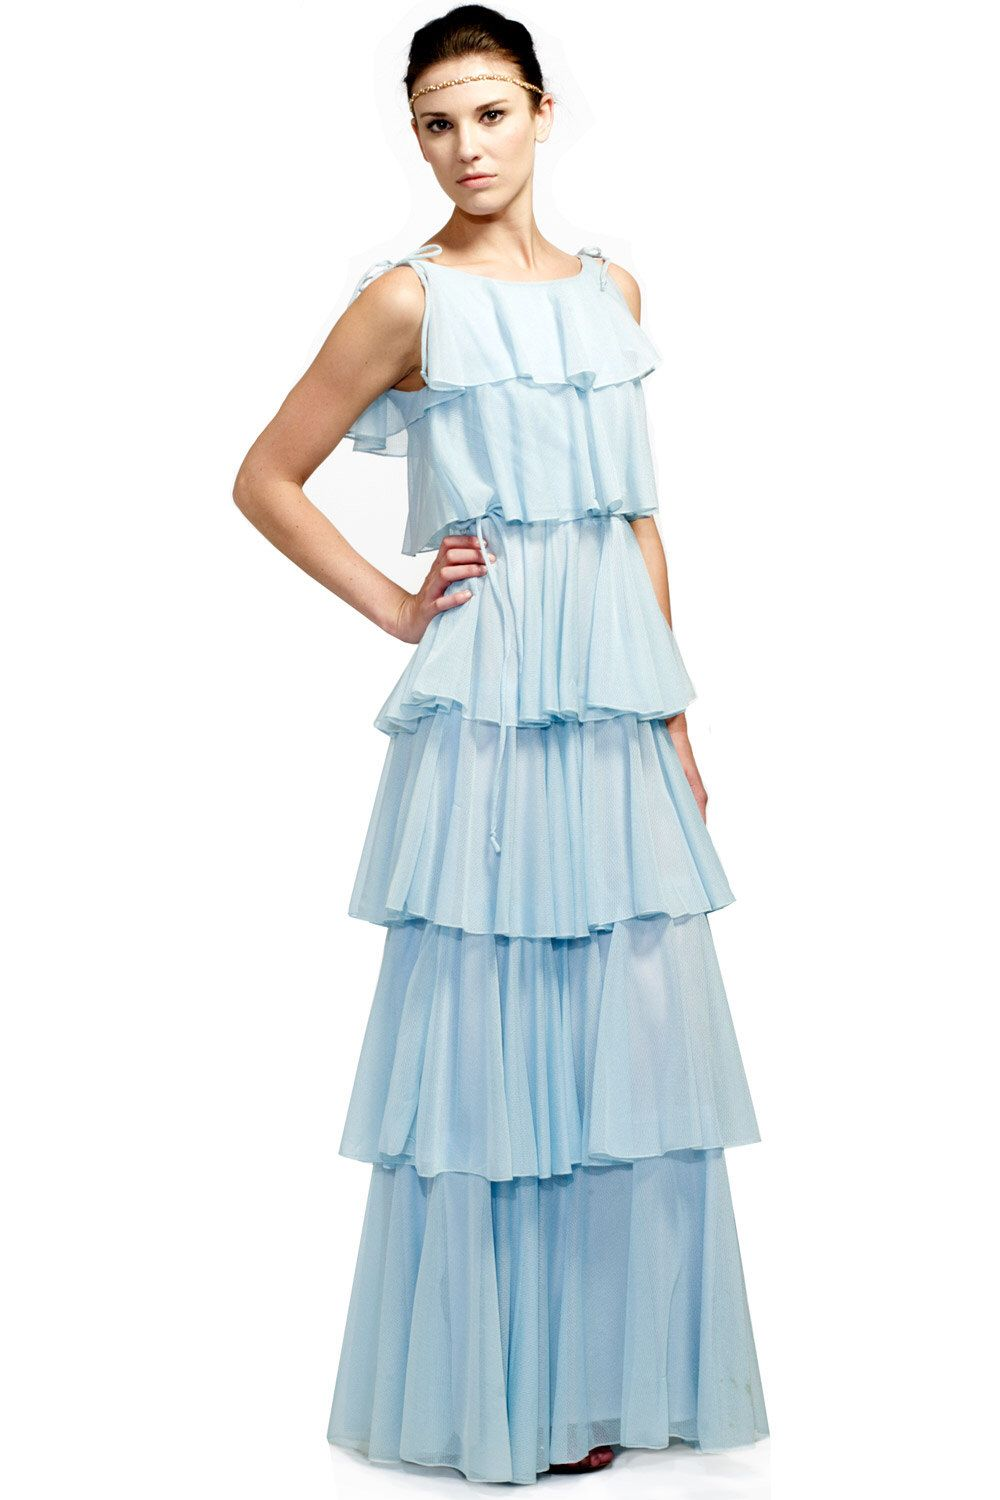 Light Blue Ruffle Tiered Chiffon Gown by PinkCloudsforGreyDay on ...